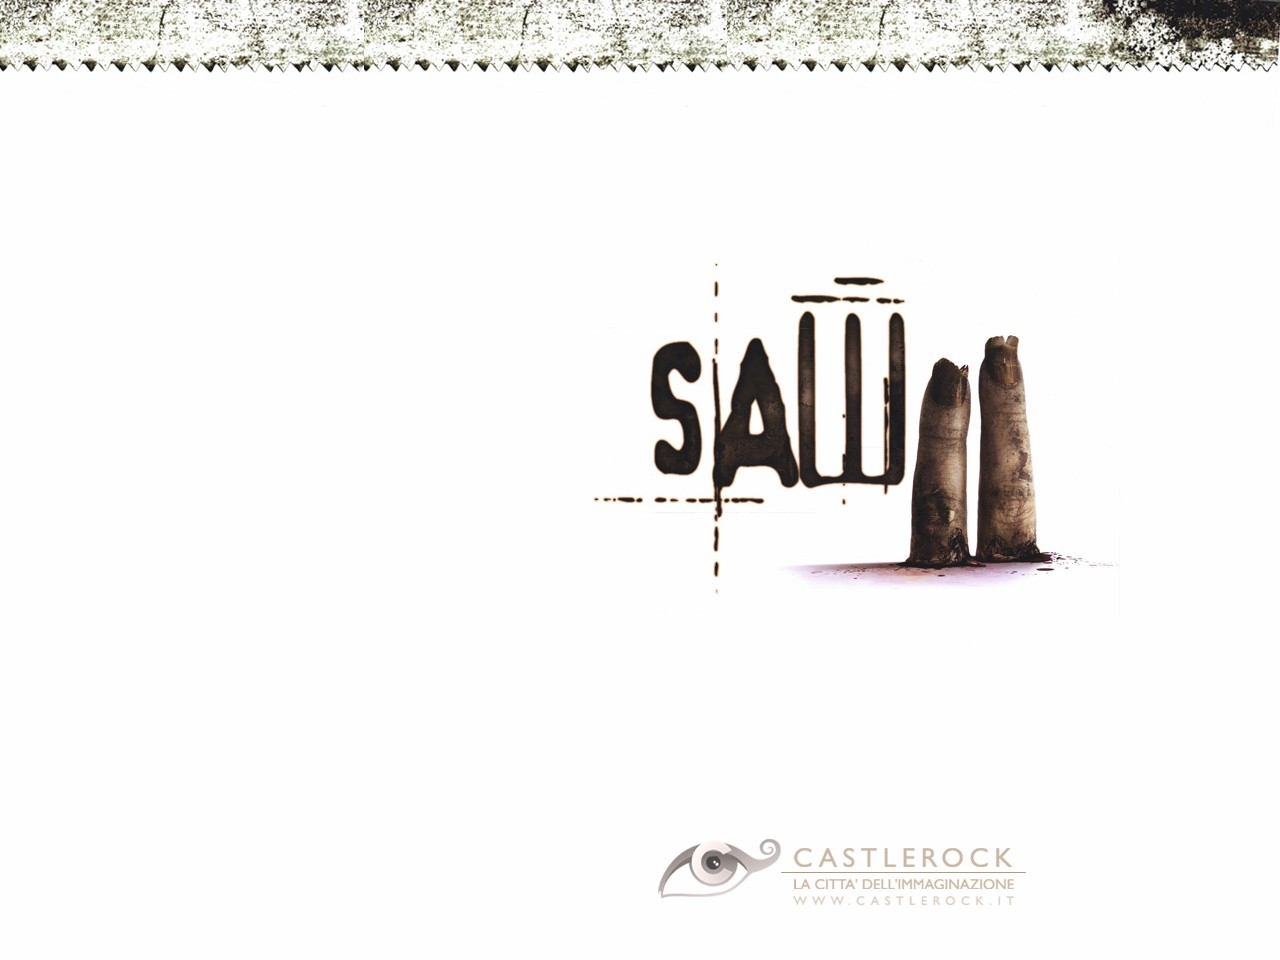 Wallpaper del film Saw 2 - La soluzione dell'enigma